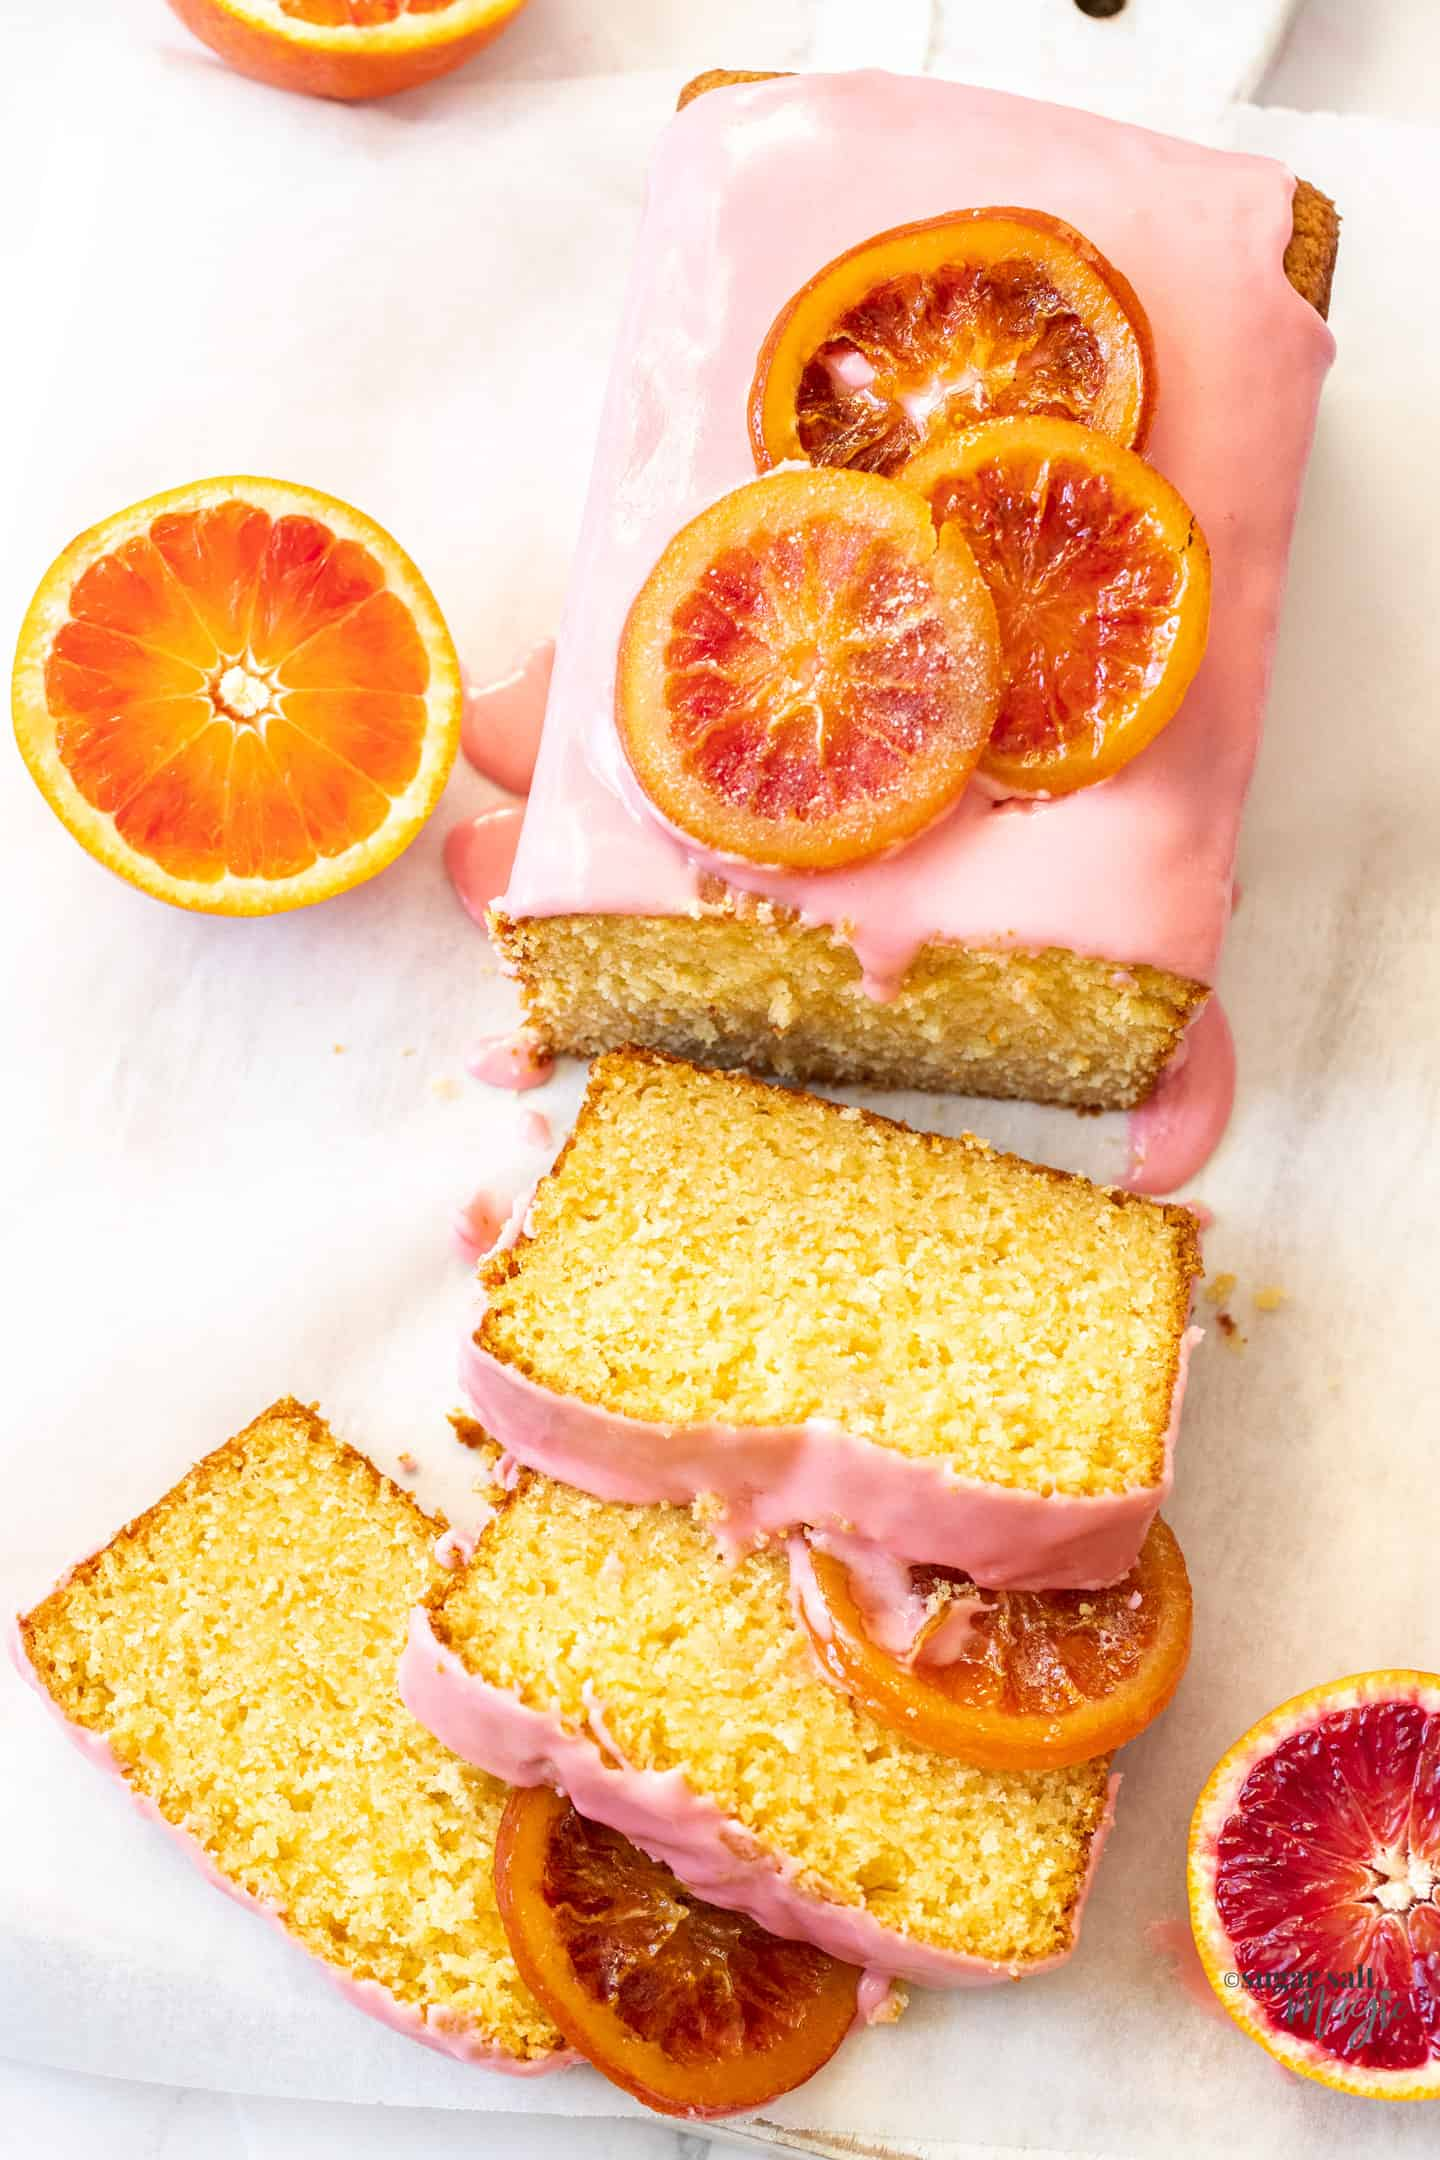 Top down view of an orange loaf cake with slices cut from it.